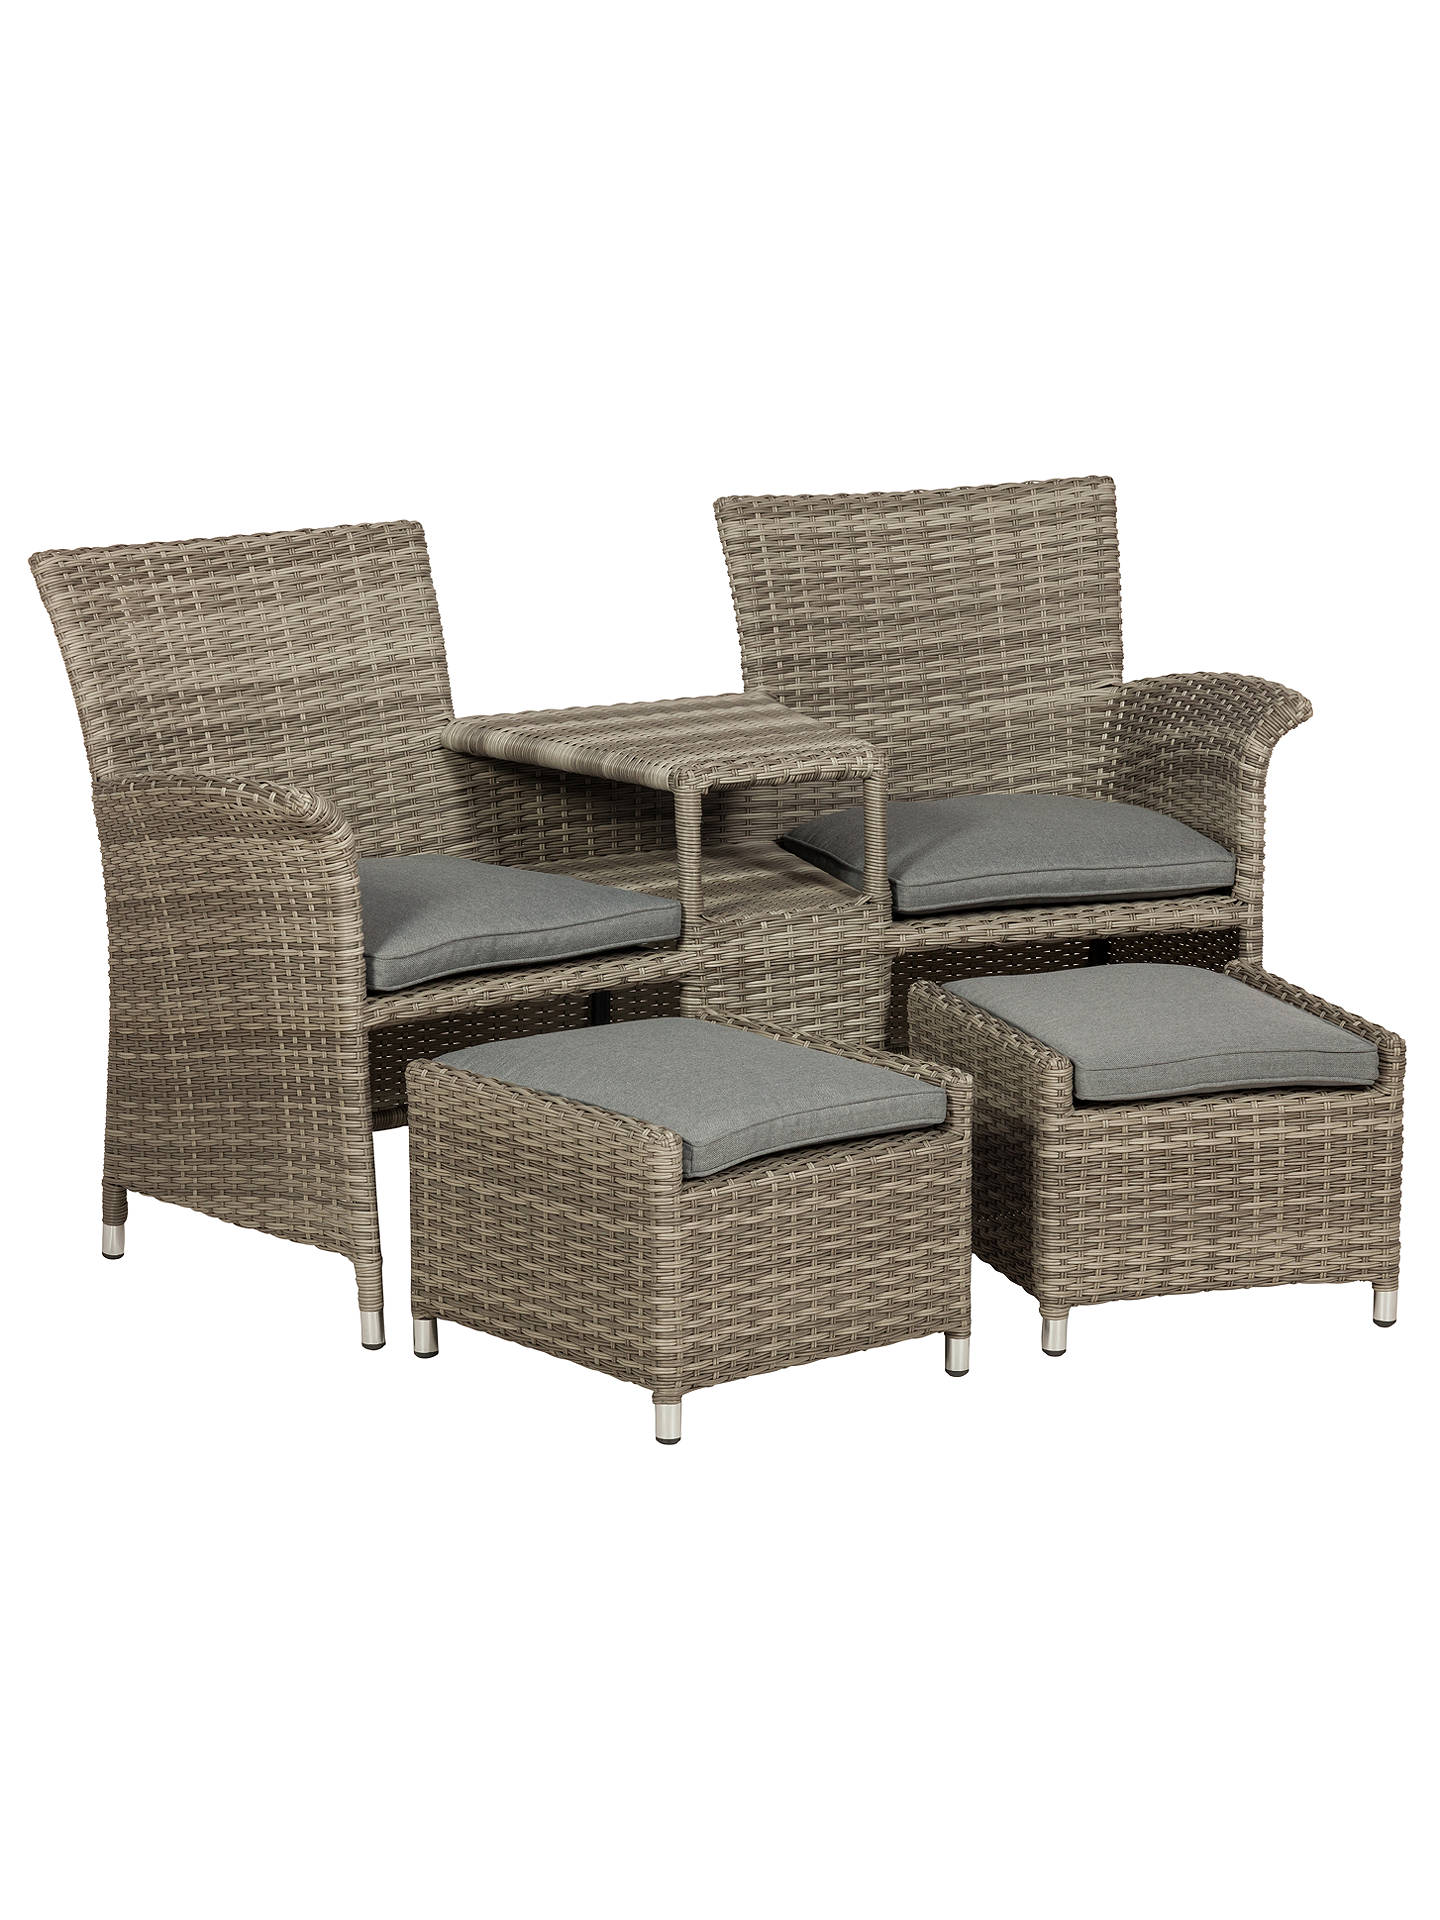 227199b57 Royalcraft Windsor Fixed Companion Garden Chairs Set With Stools ...